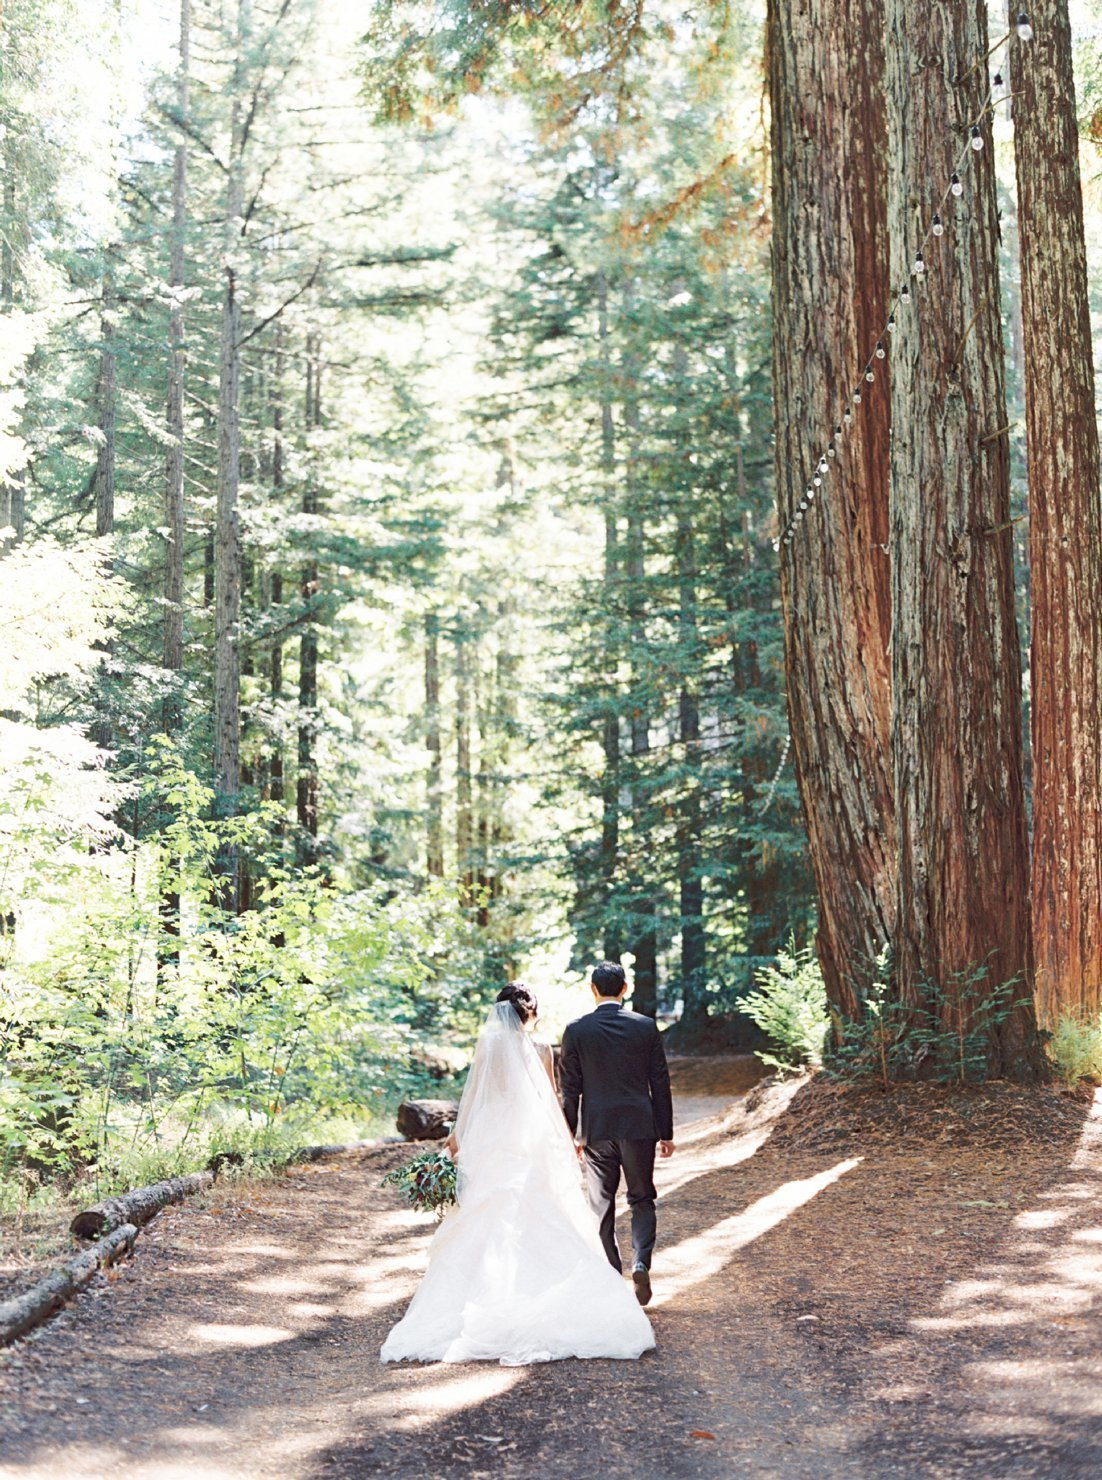 California Romantic Fine Art Wedding Photography at Chenoweth Woods \ Northern California Film Wedding Photographer_0073